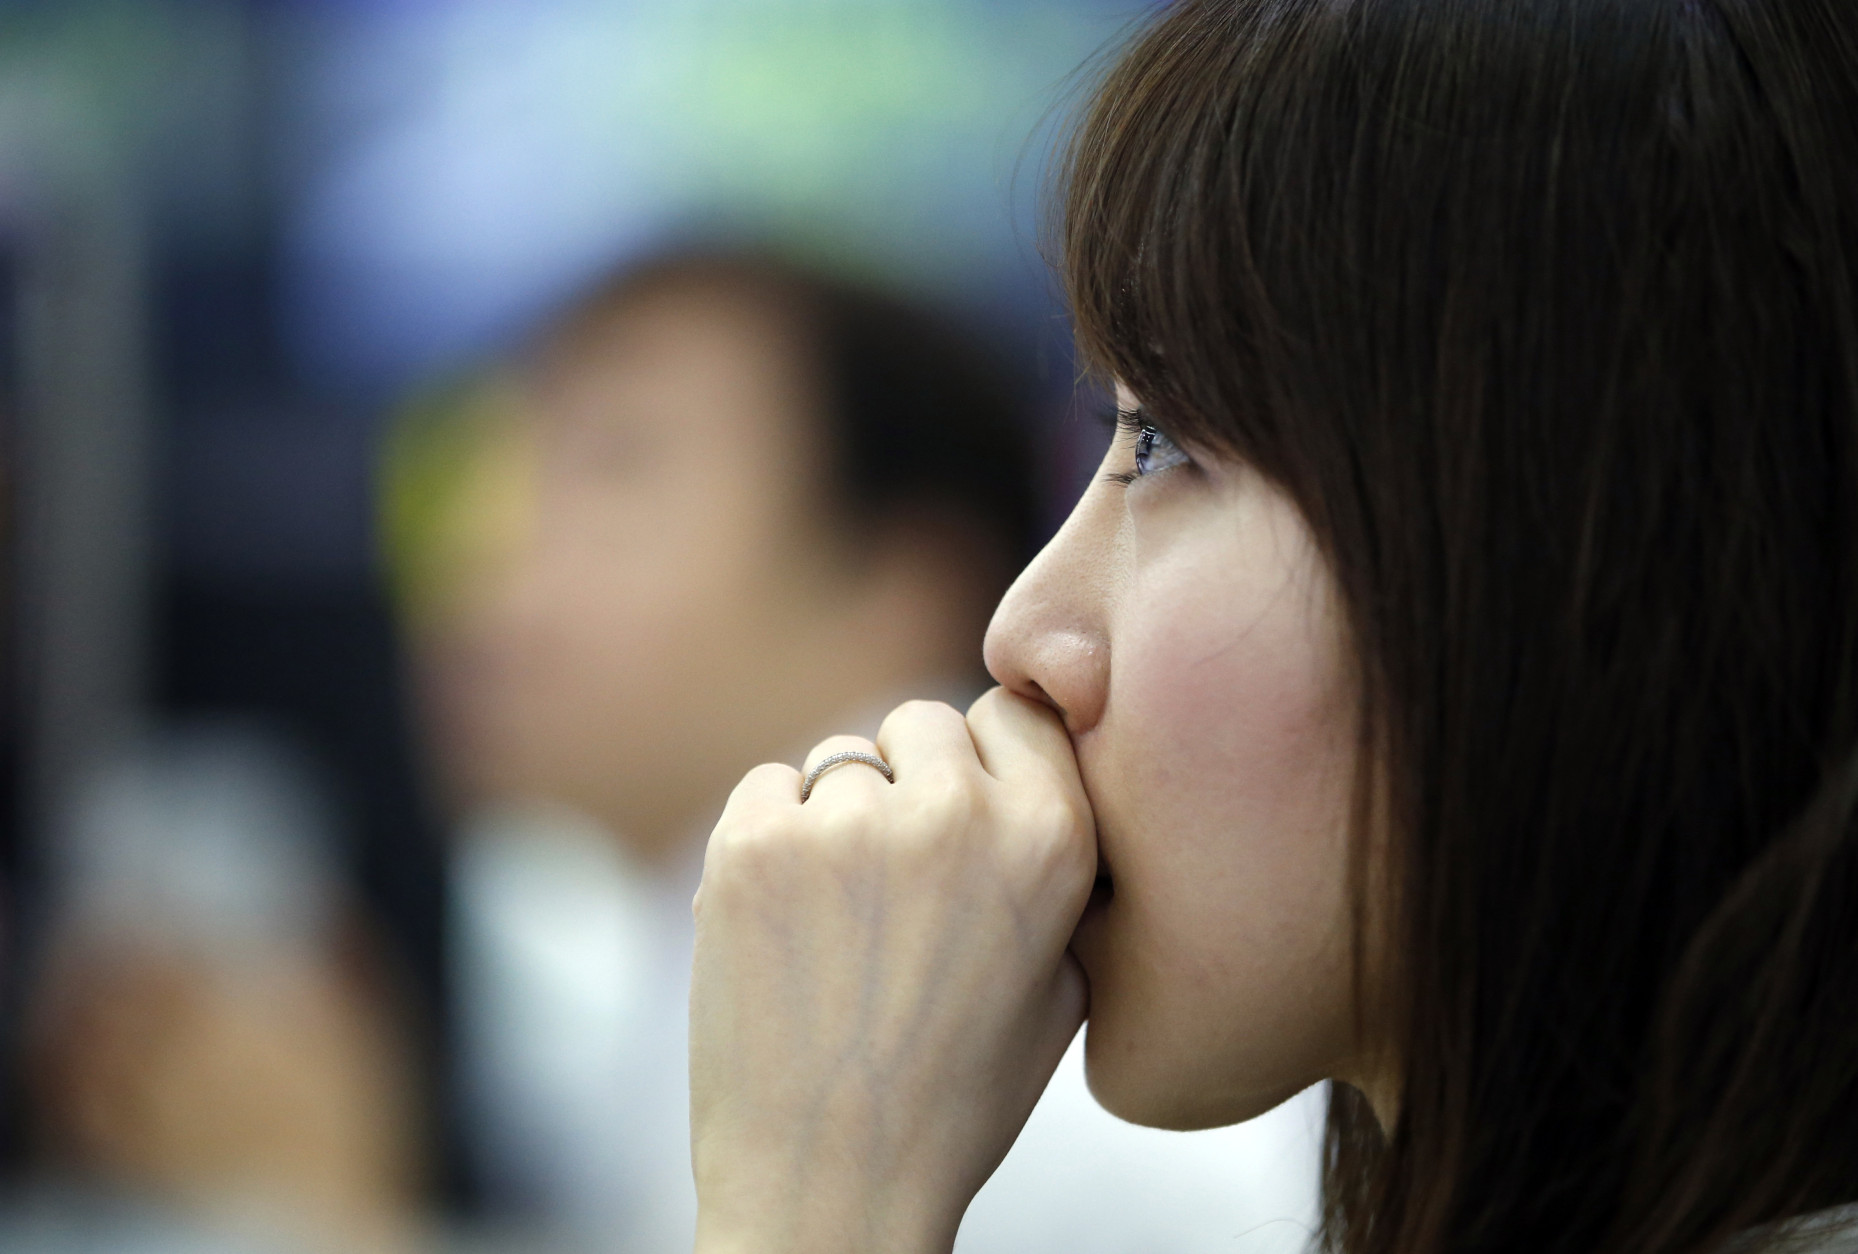 A dealer watches monitors at the foreign exchange dealing room in Seoul, South Korea, Friday, June 24, 2016. Asian stock markets were volatile on Friday with Tokyo stocks and U.S. futures plunging as early vote results on whether Britain should stay in the European Union showed a tight race. (AP Photo/Lee Jin-man)